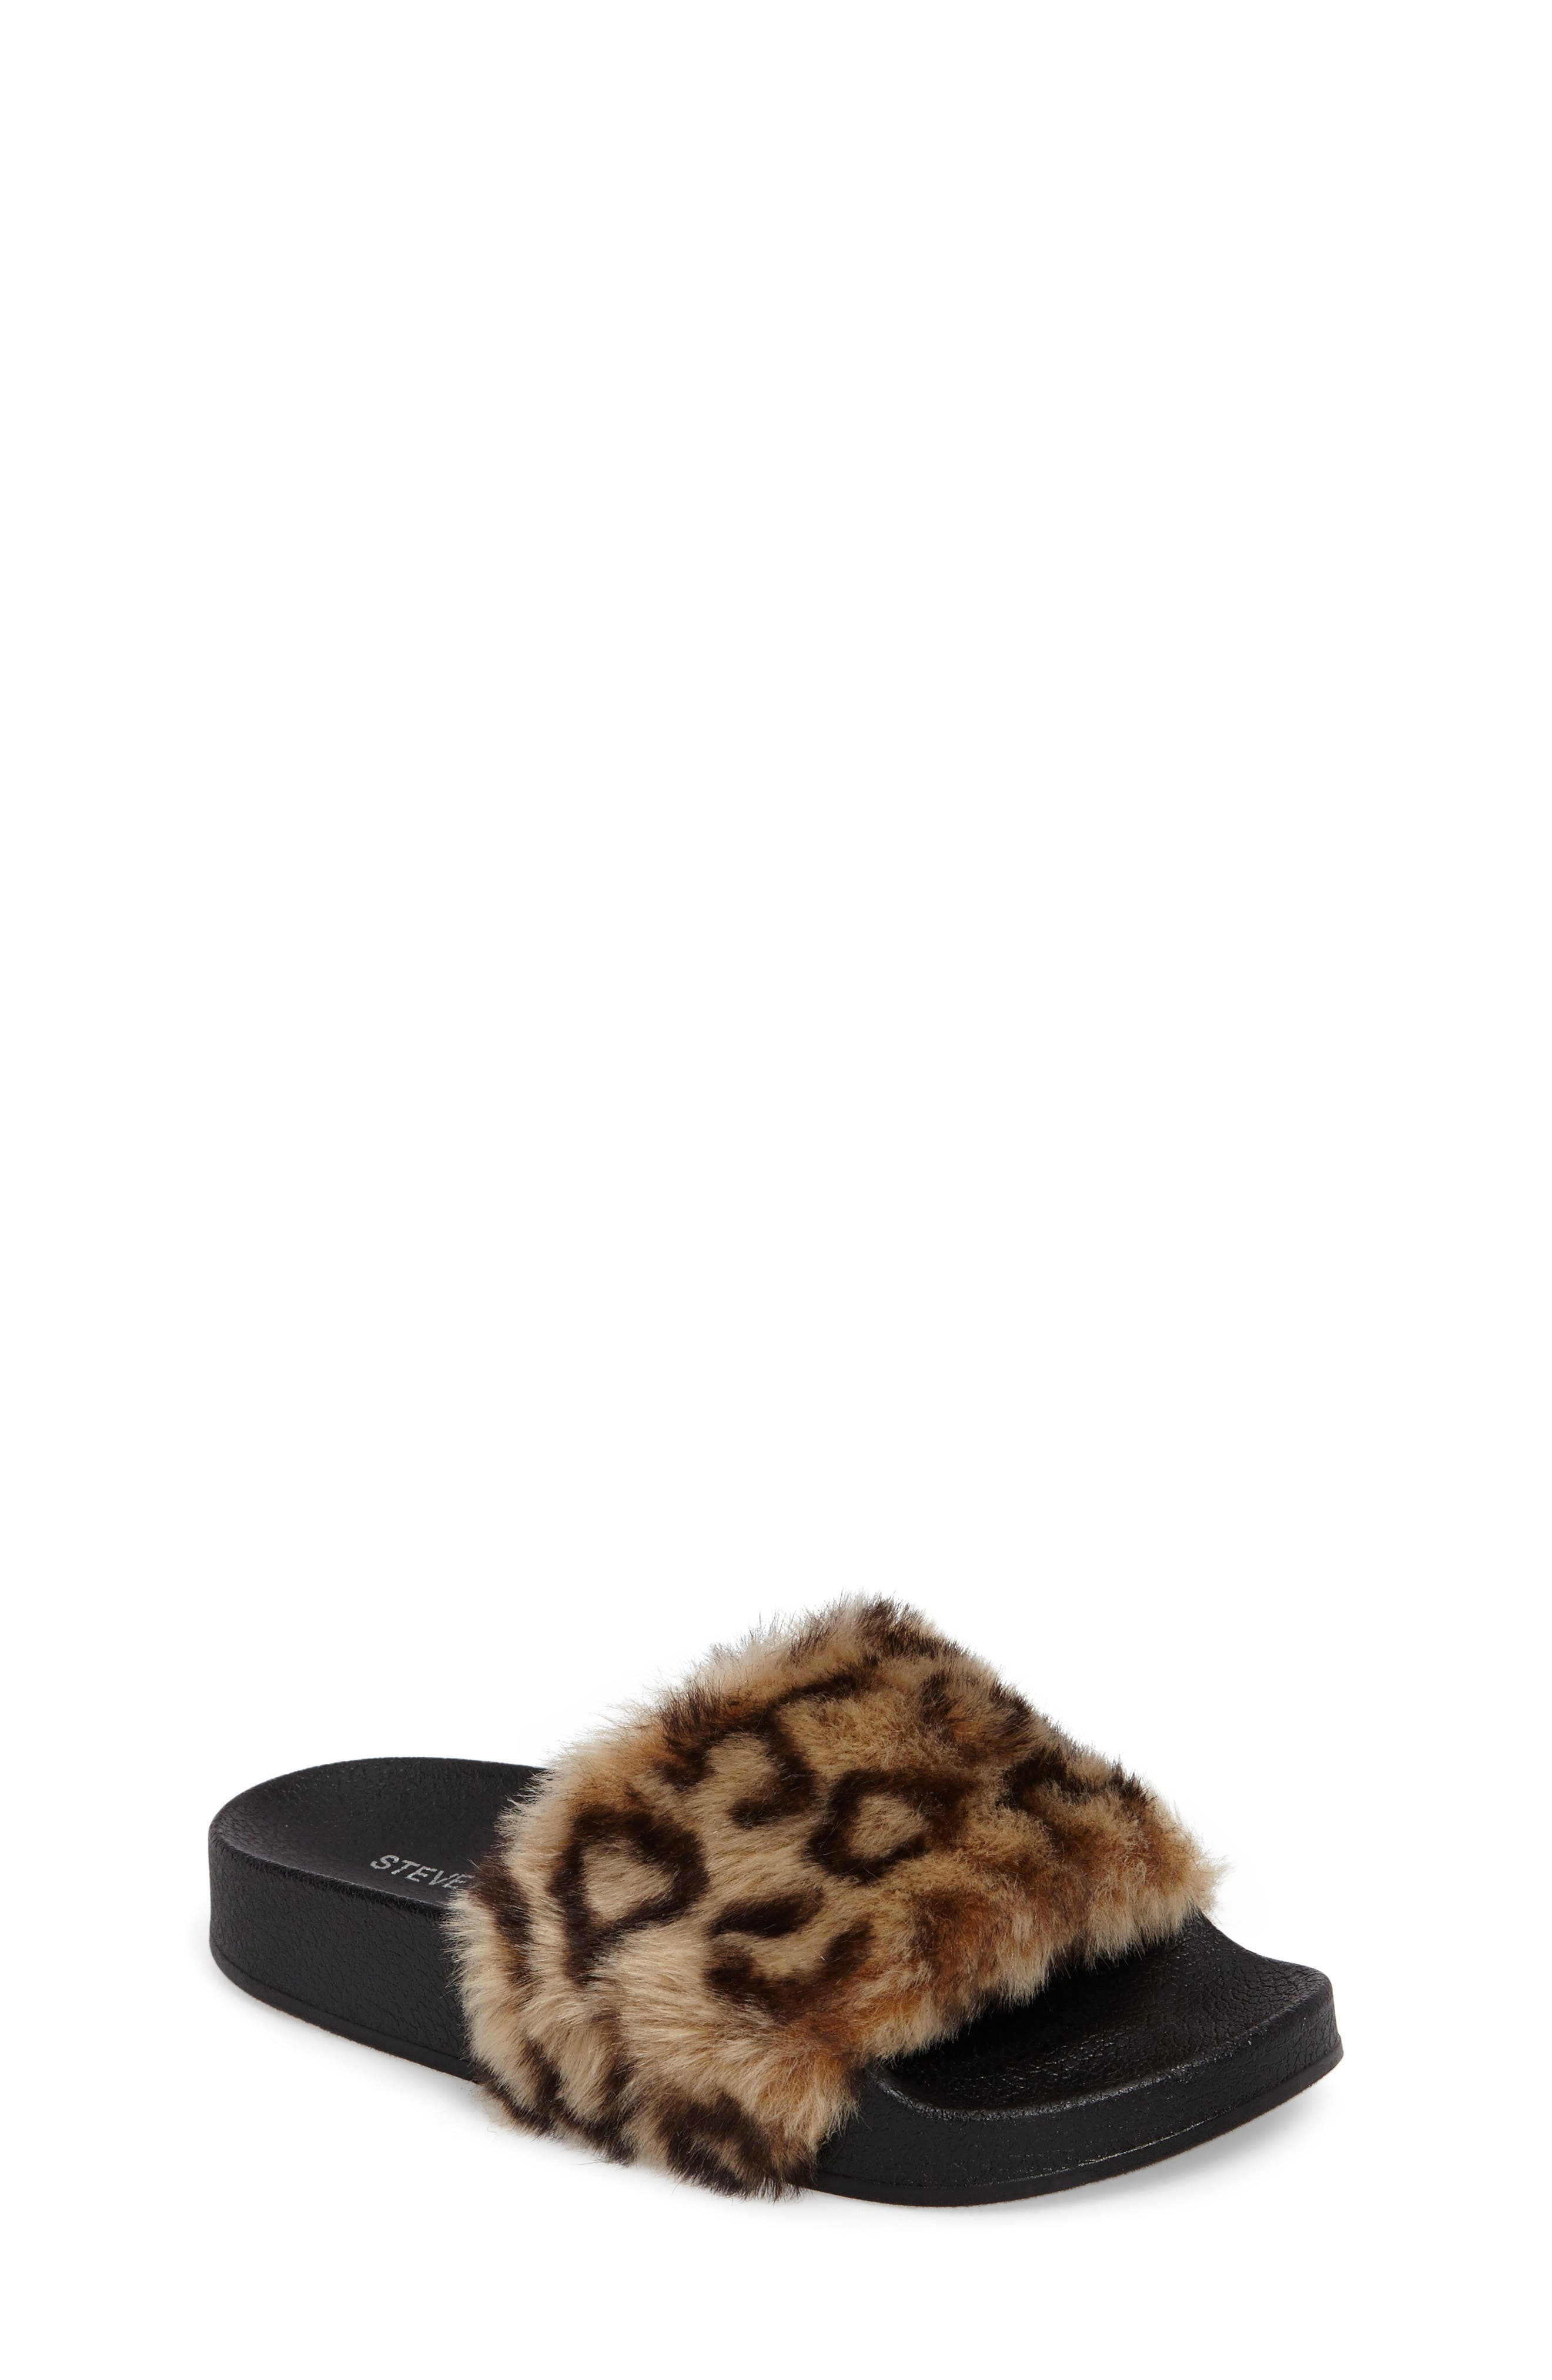 Steve Madden Softey Slide (Little Kid & Big Kid)